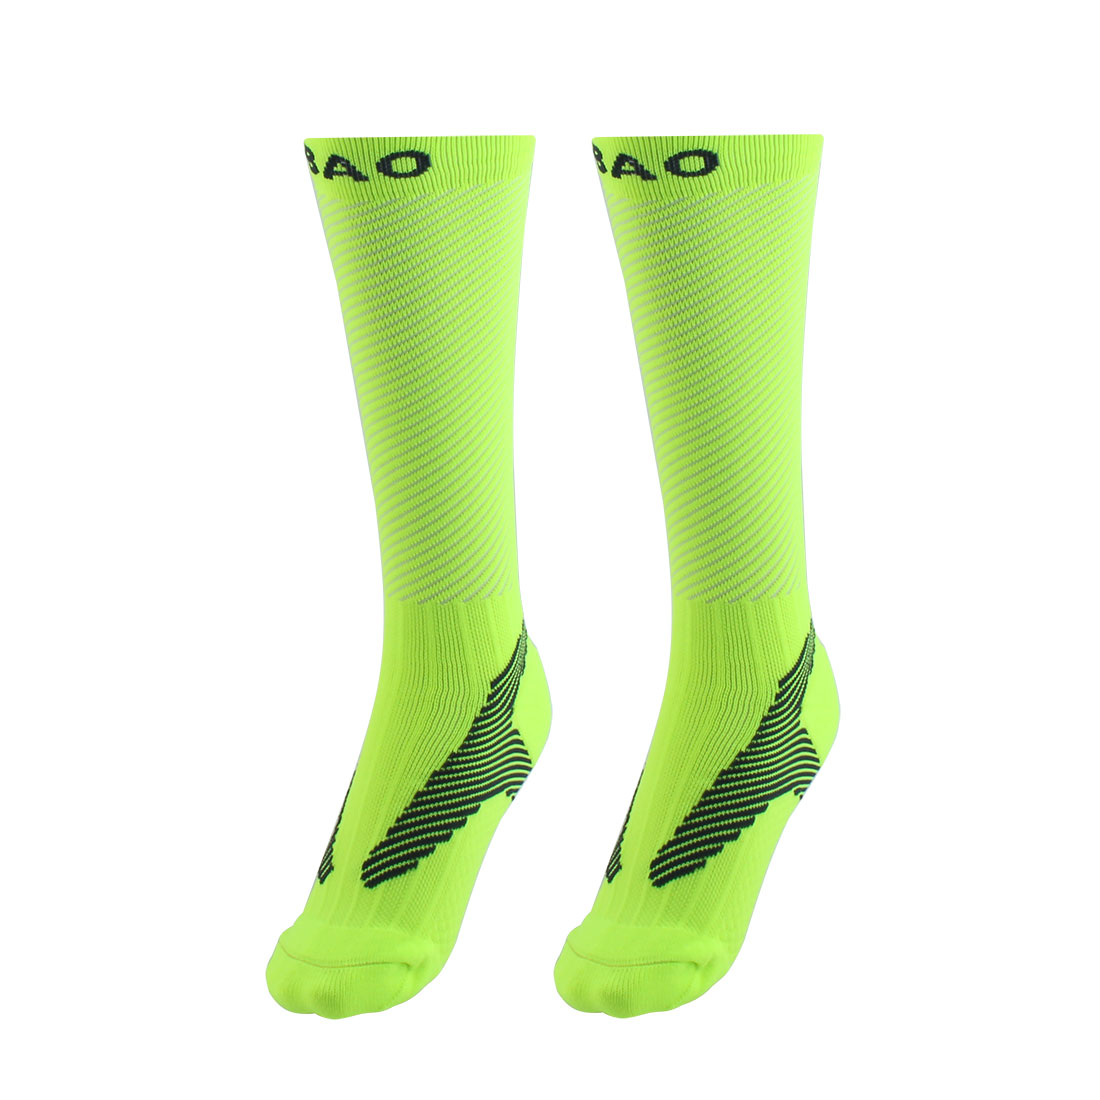 R-BAO Authorized Bicycle Jogging Mountain Bike Cotton Blend Breathable Sports Cycling Socks Fluorescent Green M